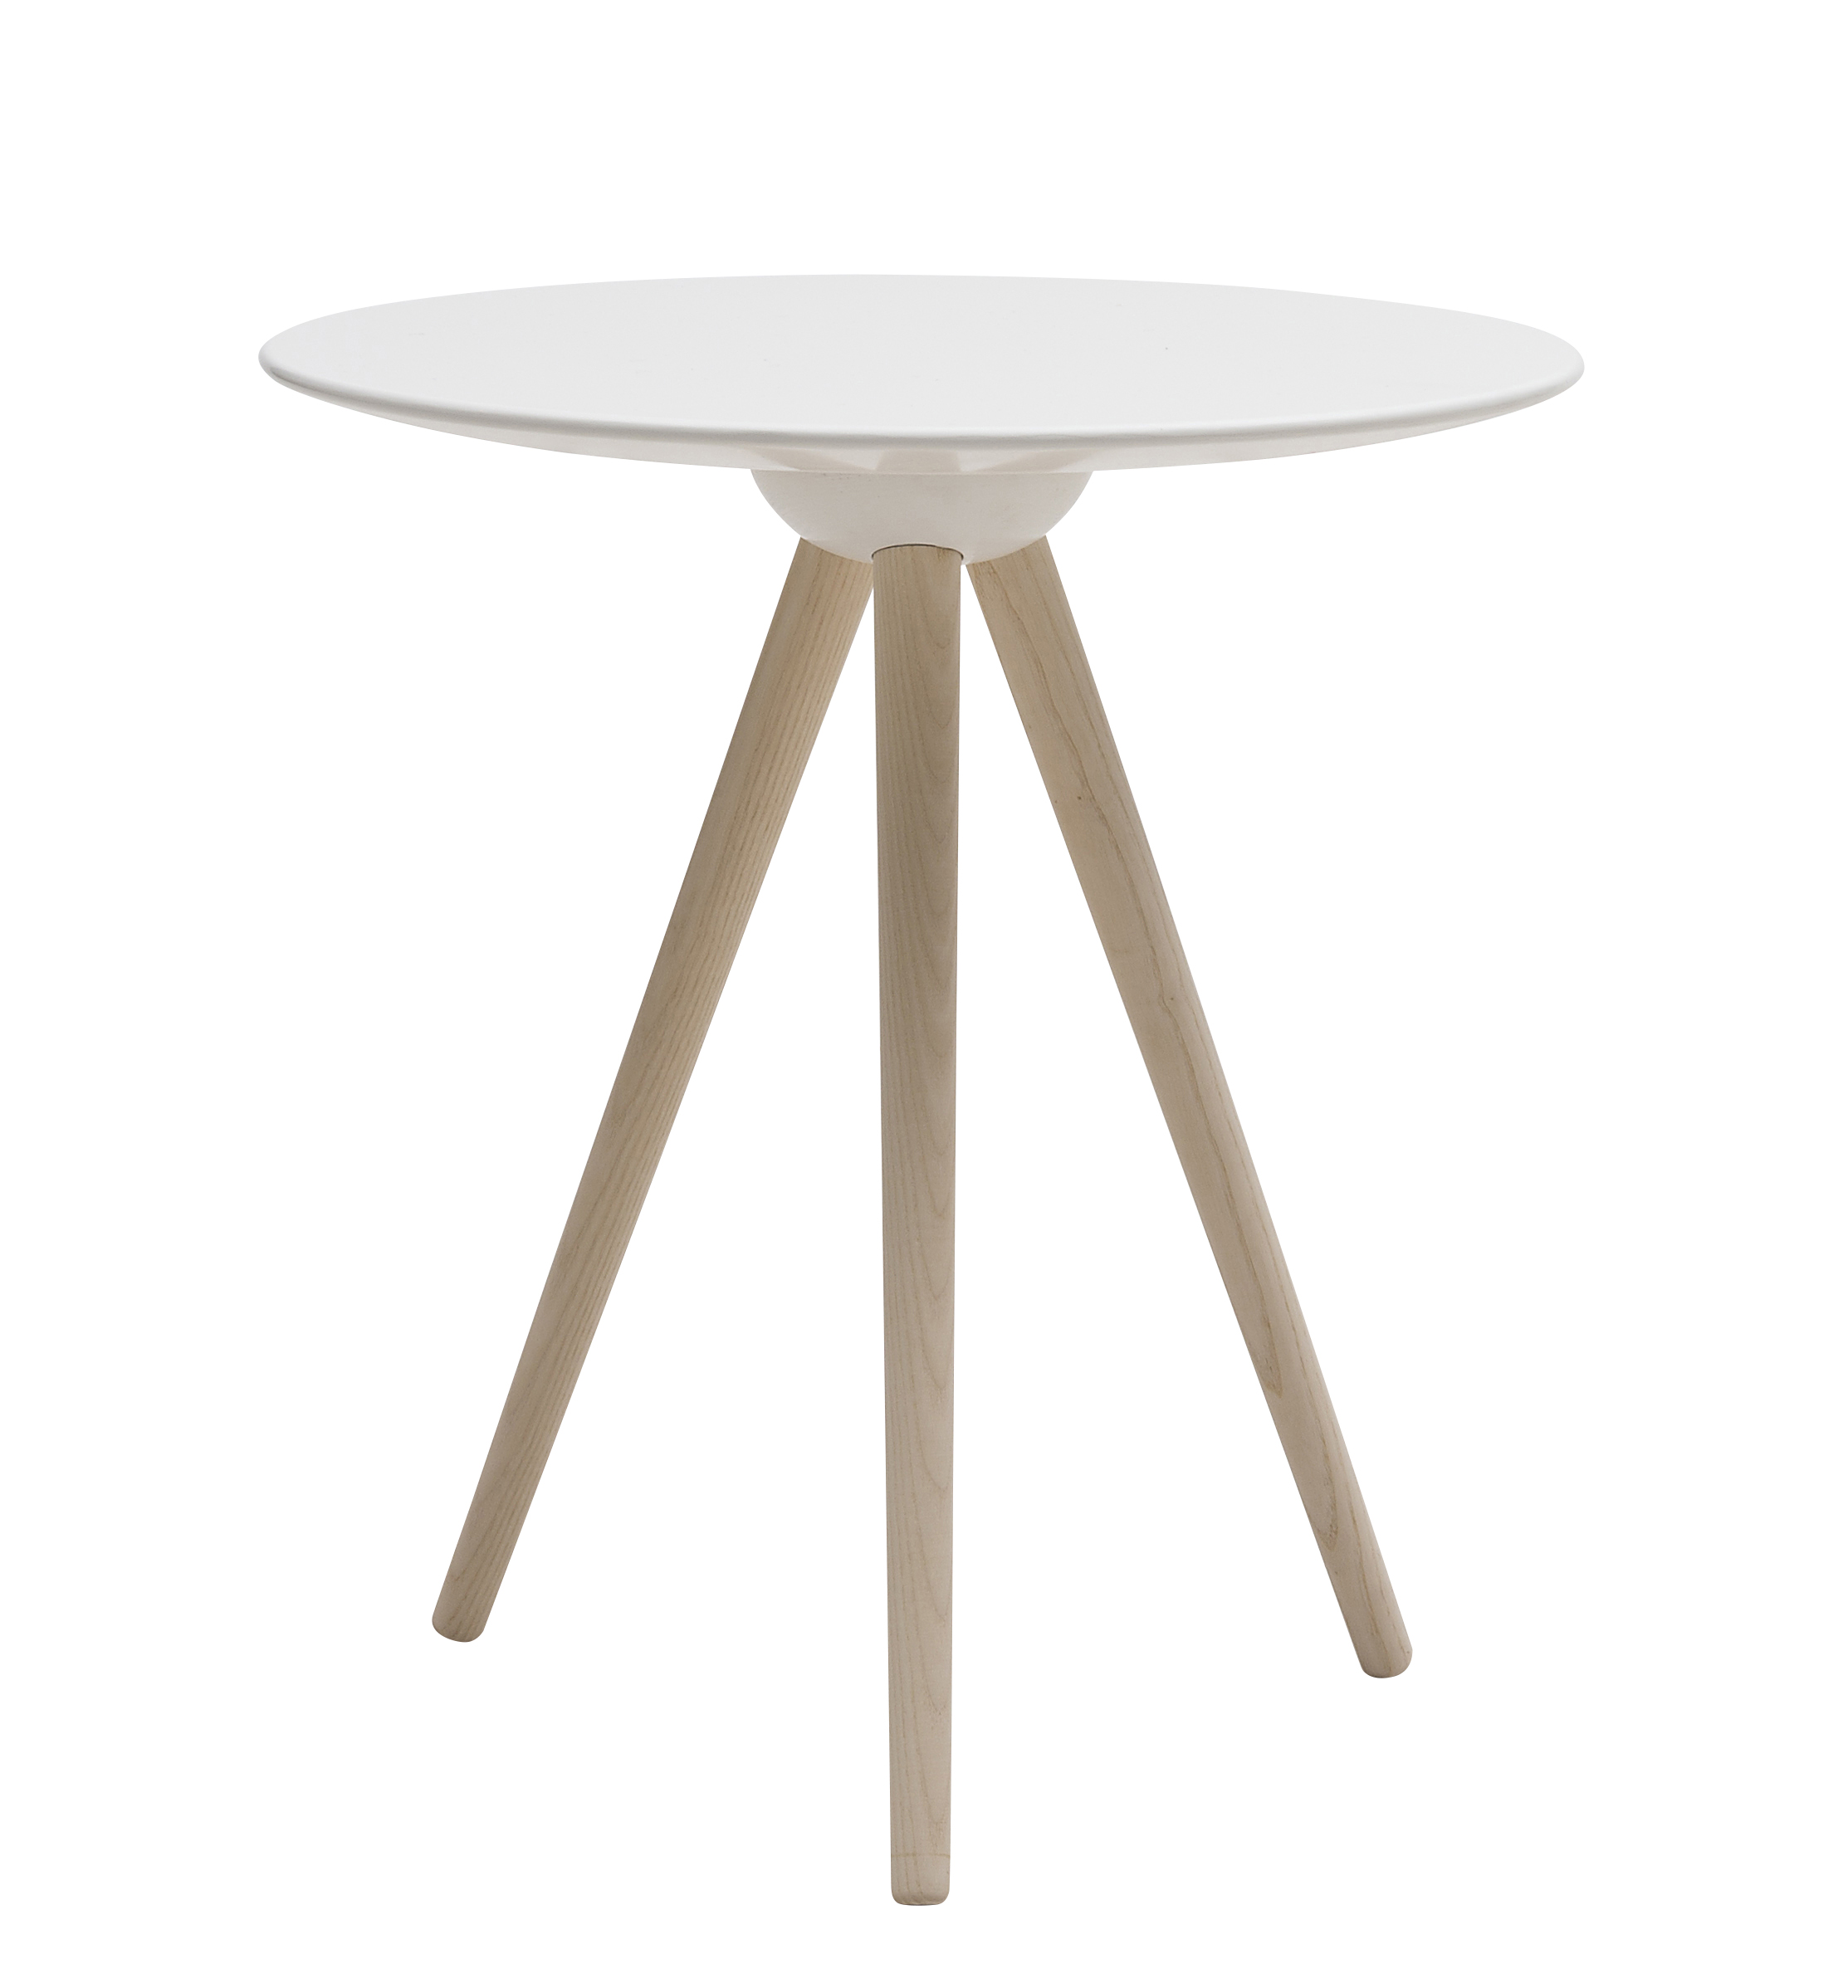 Table d\'appoint ronde scandinave Circoe